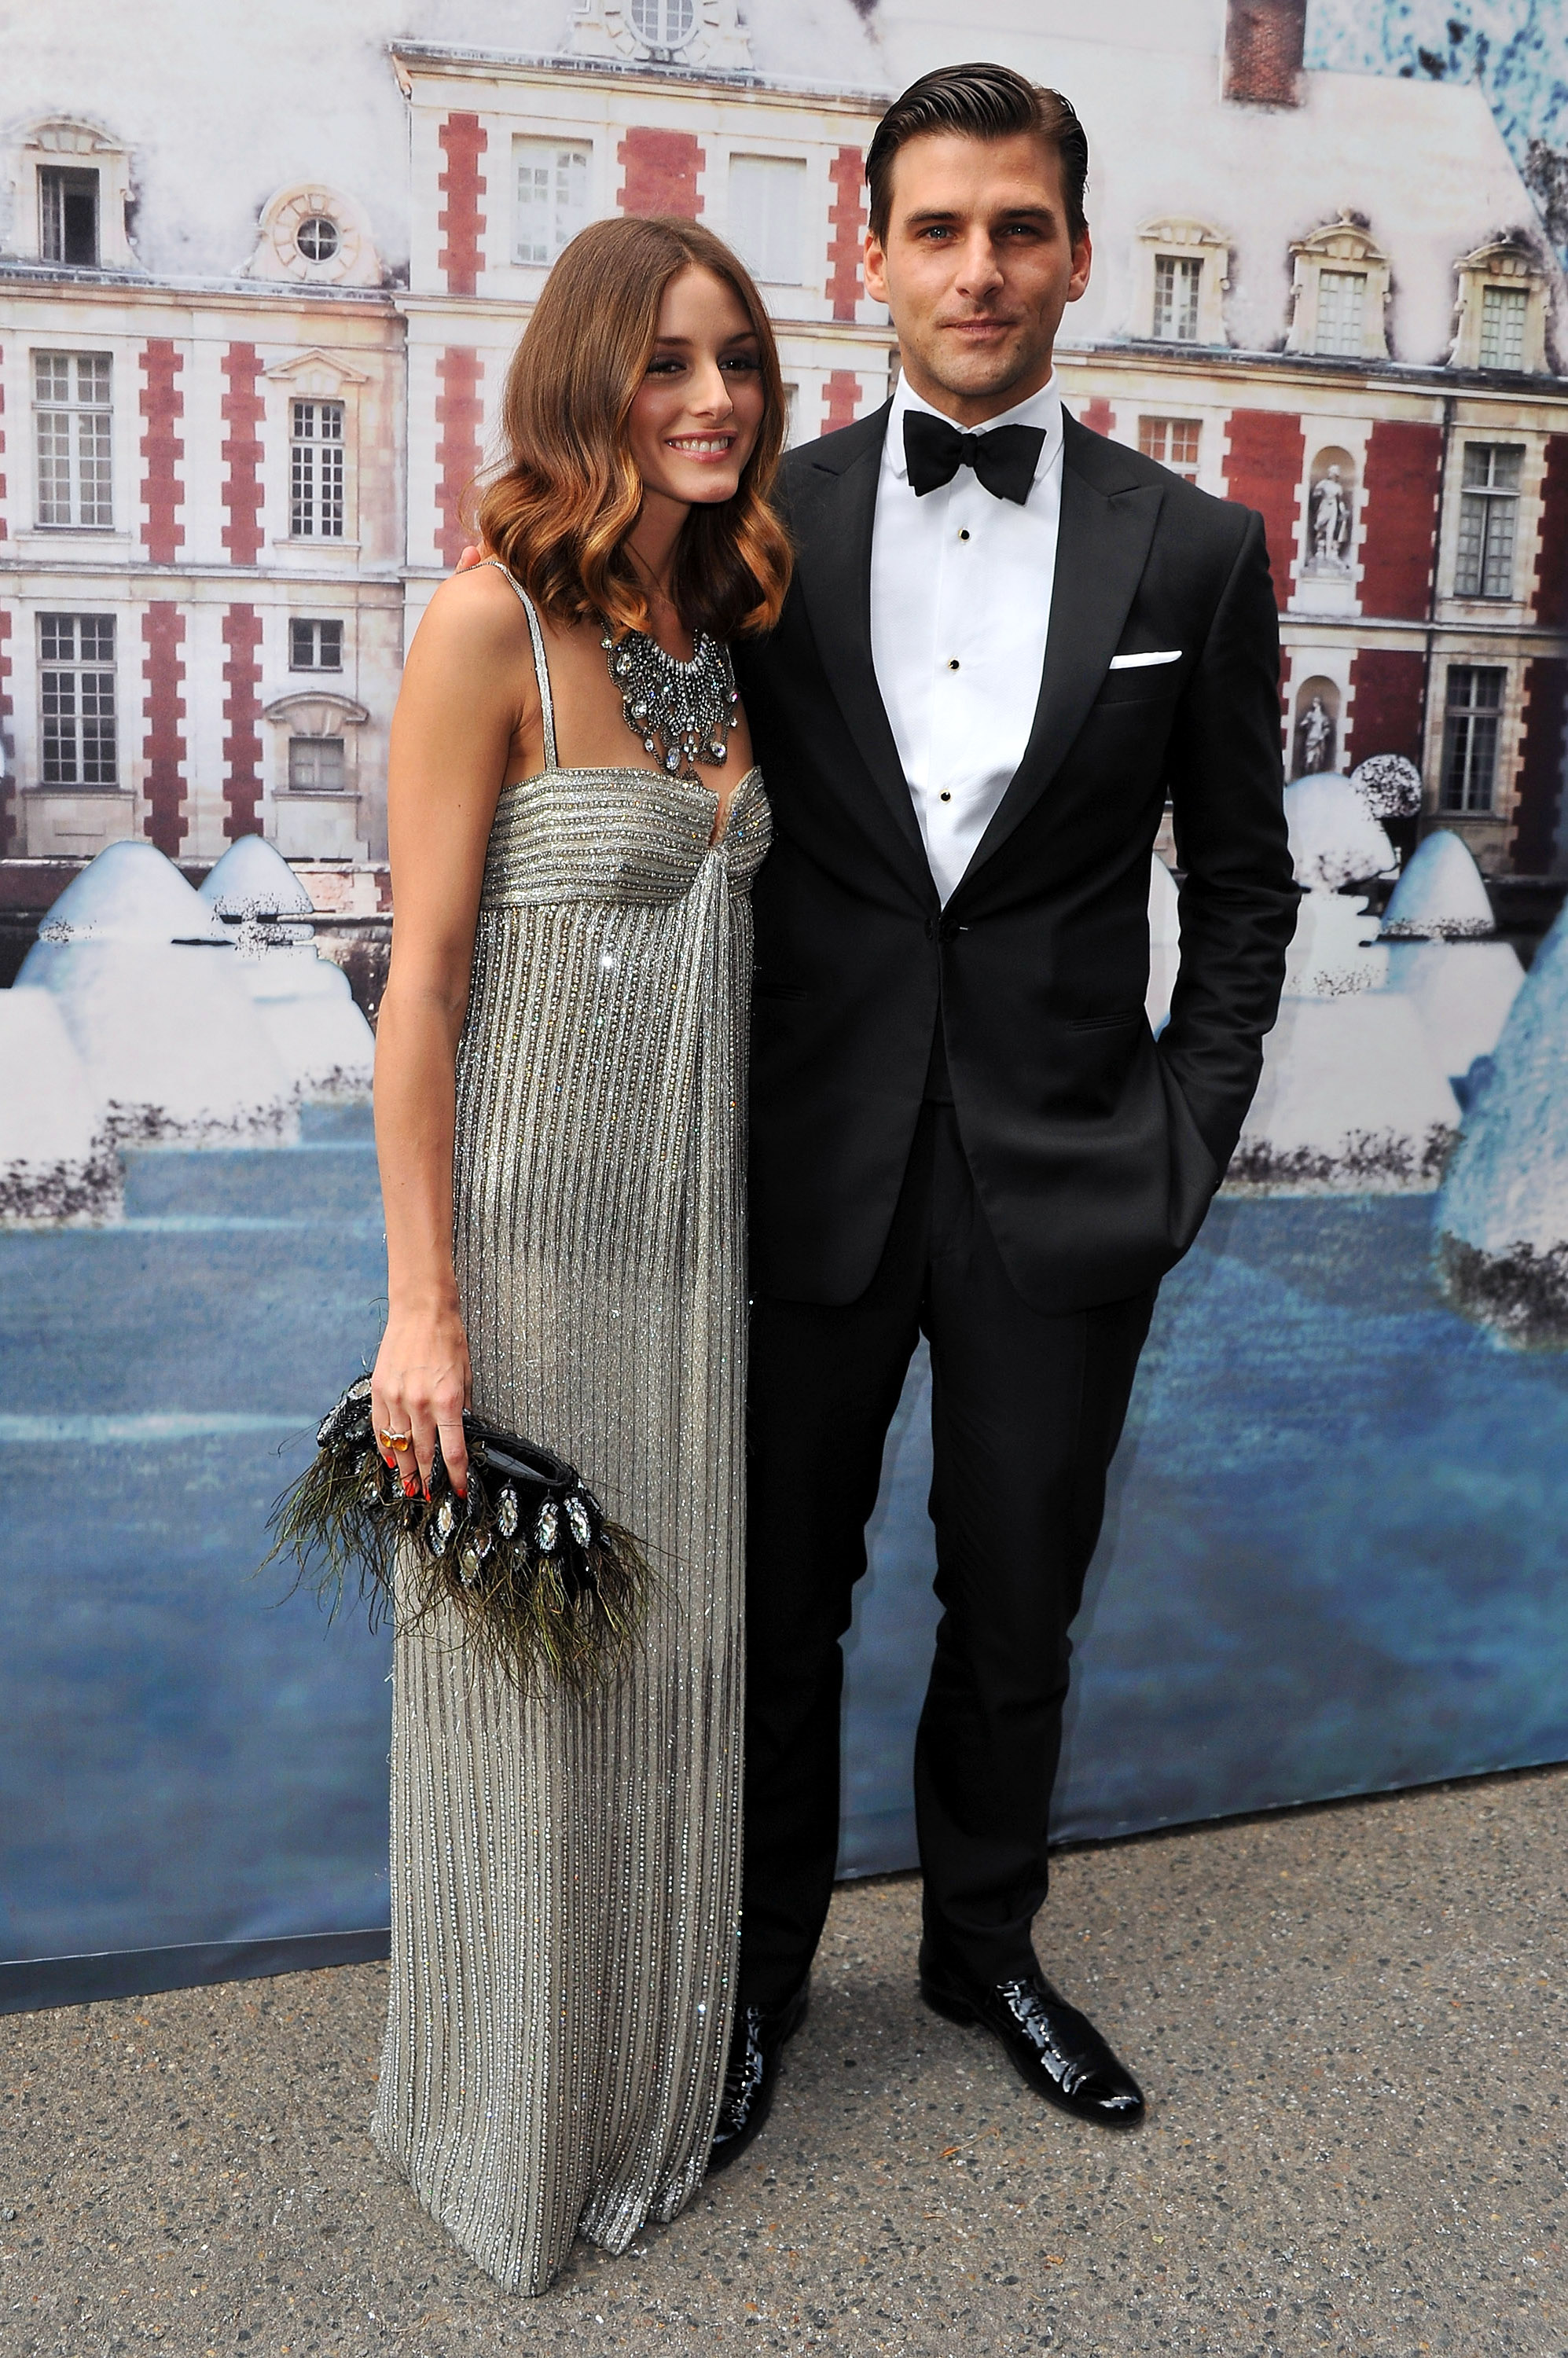 Olivia Palermo and boyfriend Johannes Huebl arrived together at the ball.